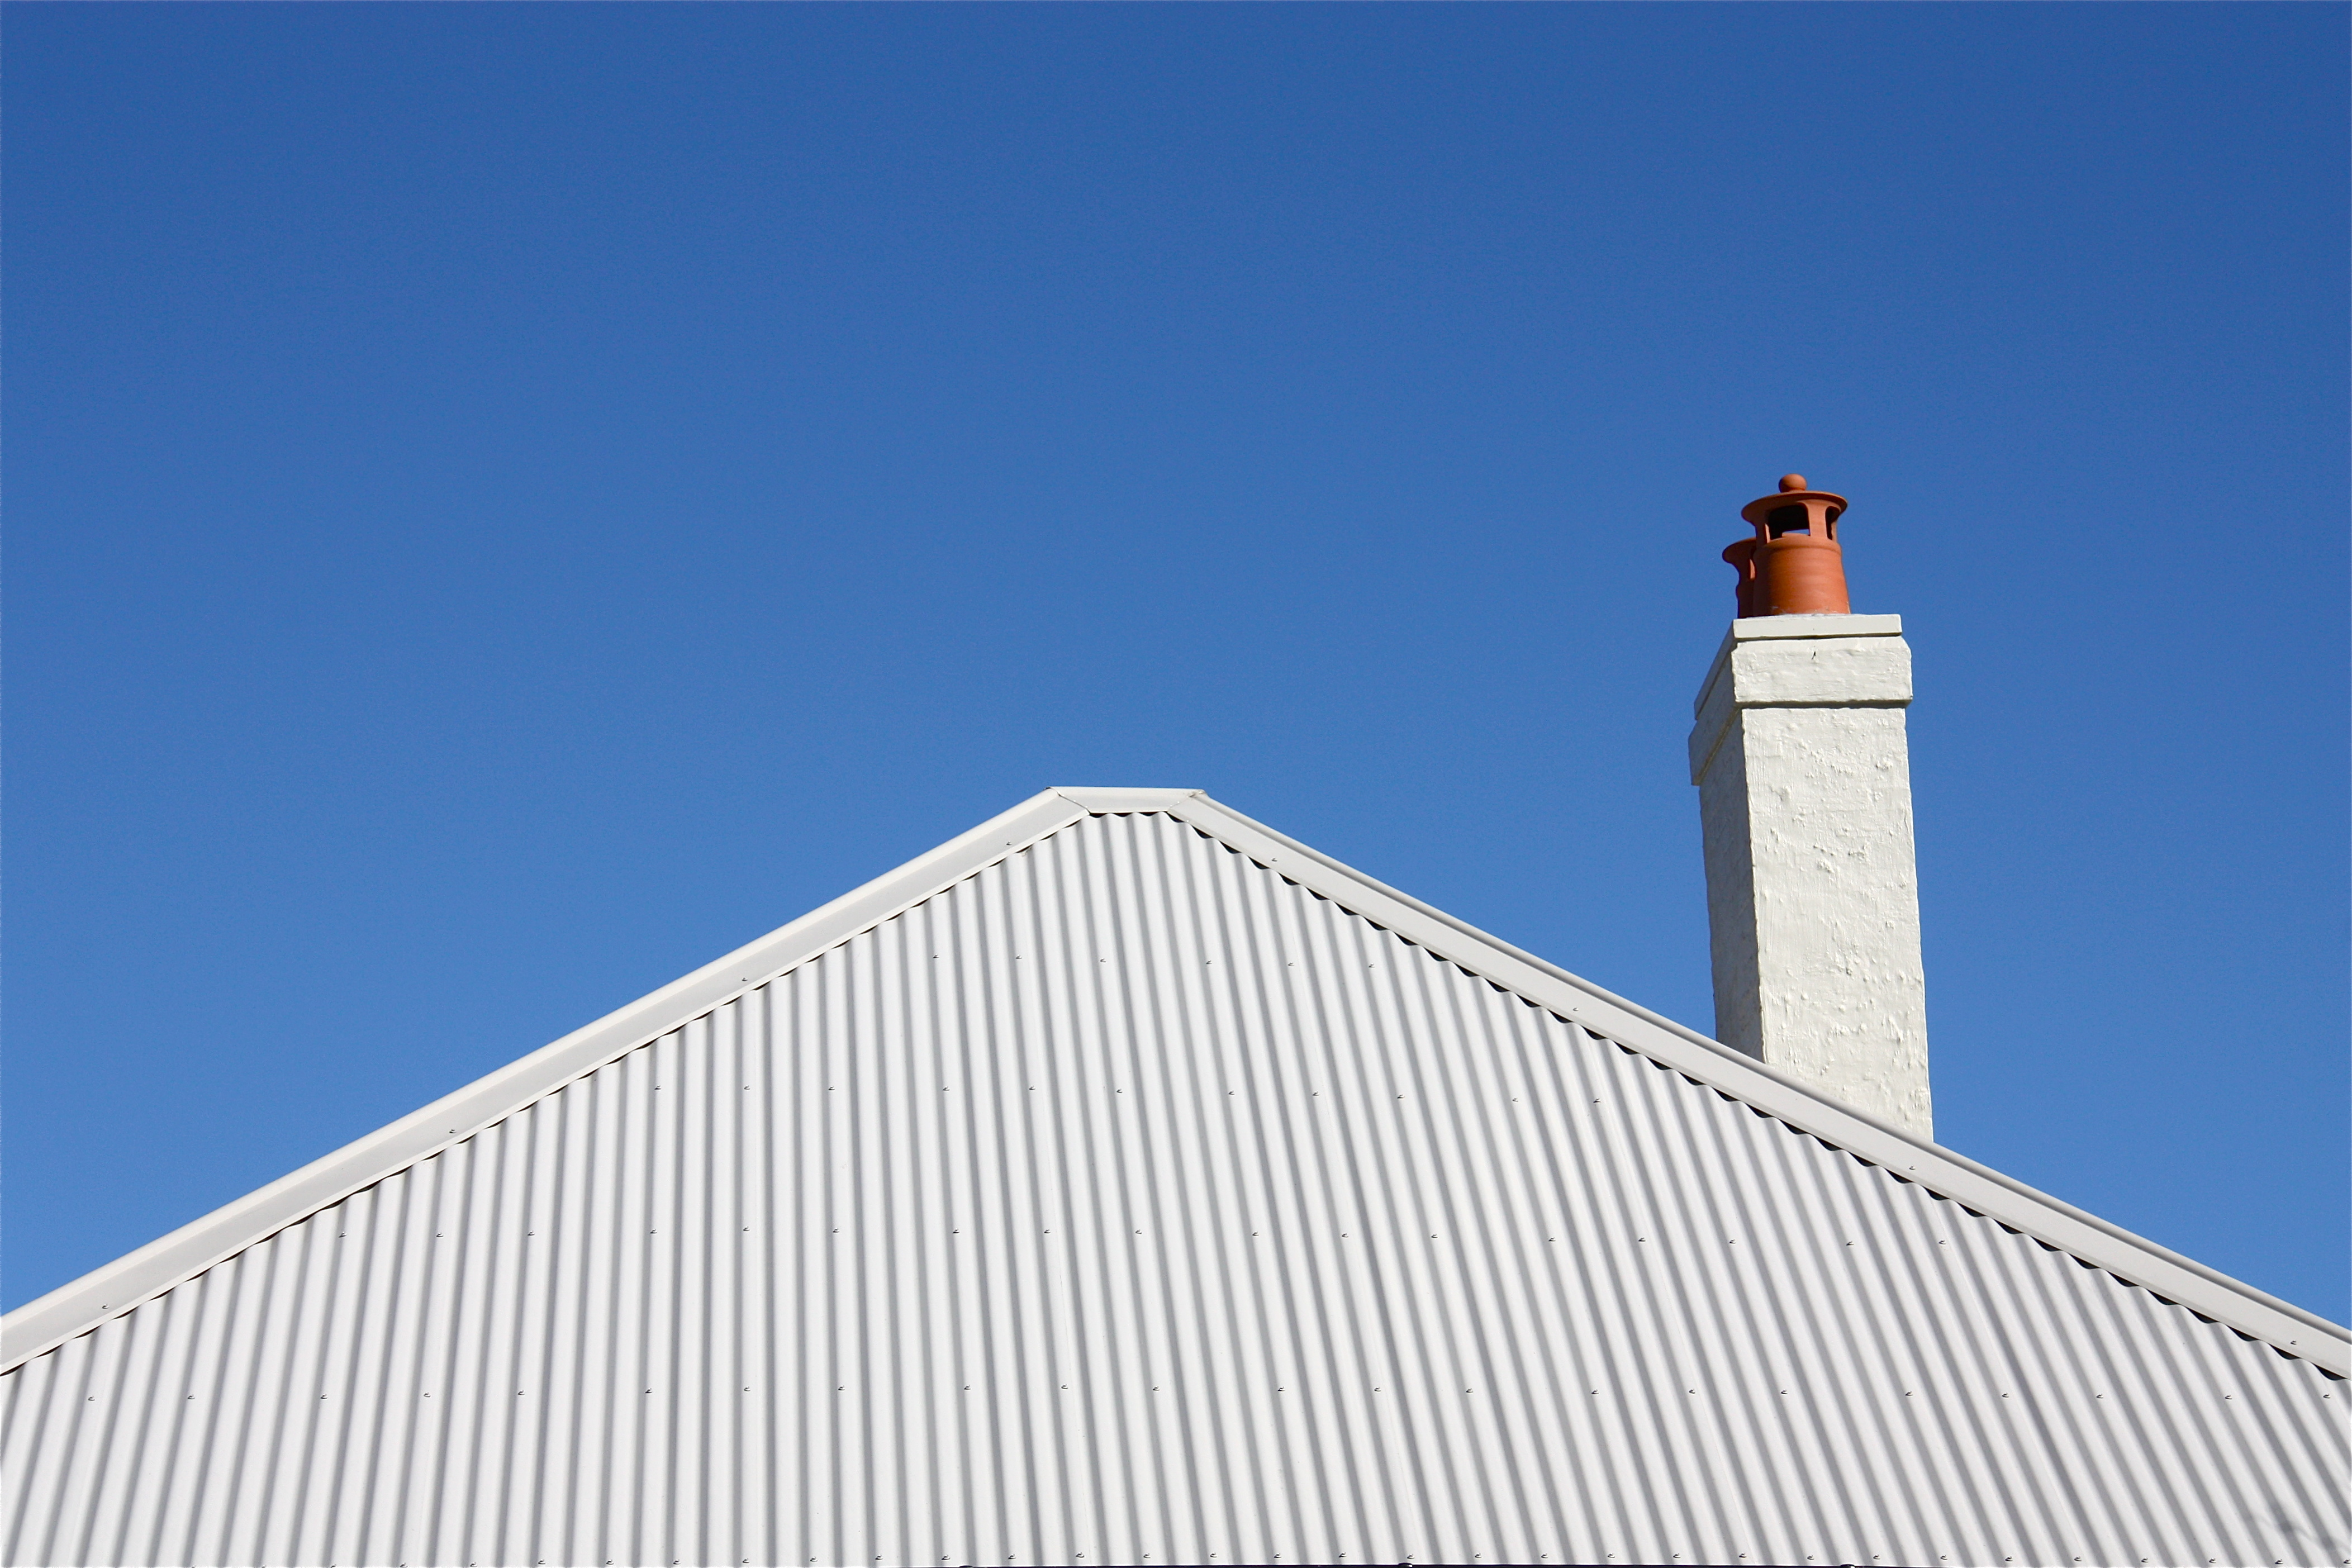 How to Calculate a Corrugated Metal Roof | Home Guides | SF Gate